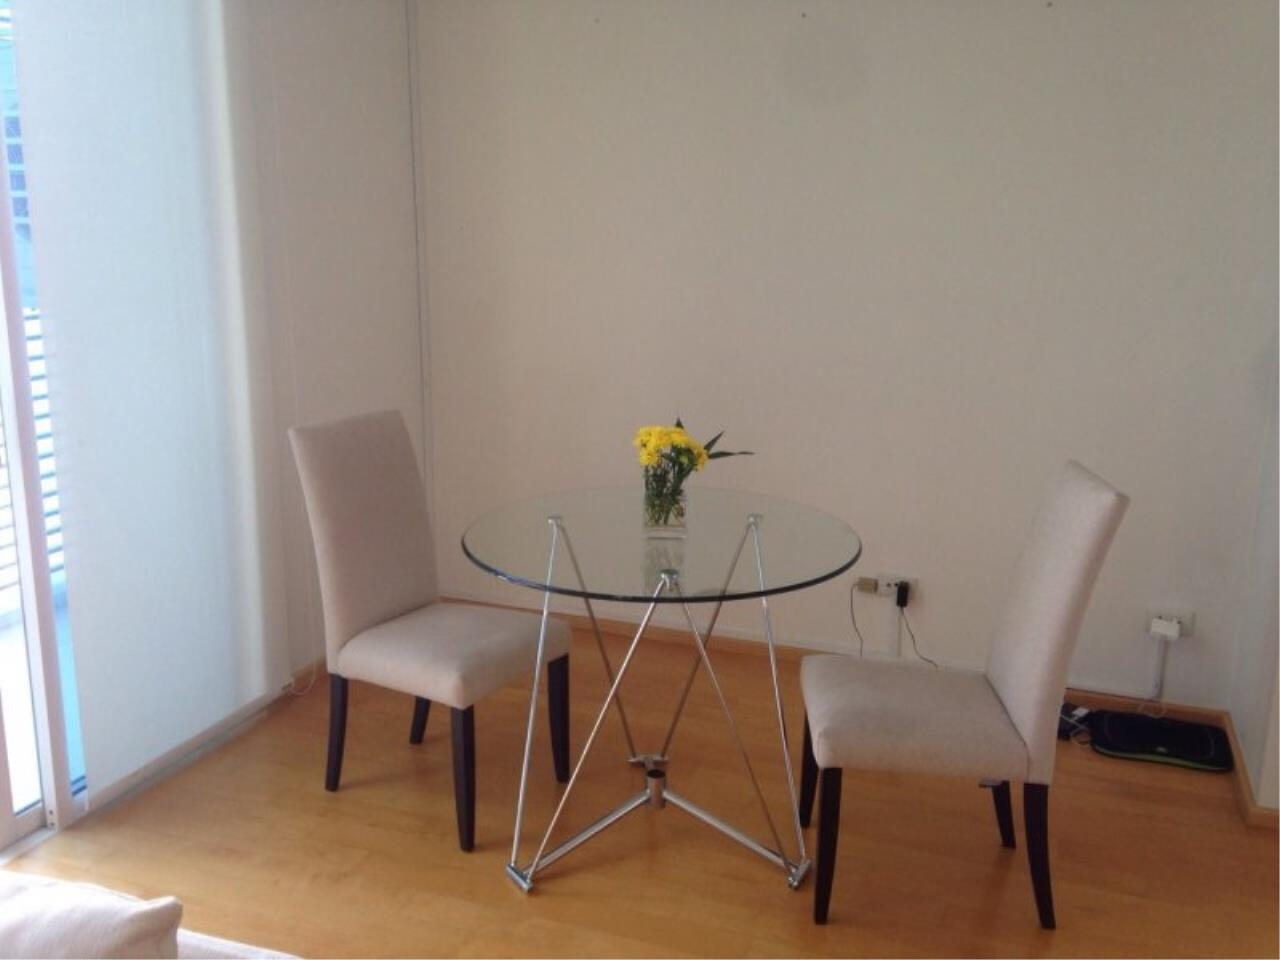 Piri Property Agency's Duplex 1 Bedroom in the Villa Ratchatewi Condo for rent on high floor 4